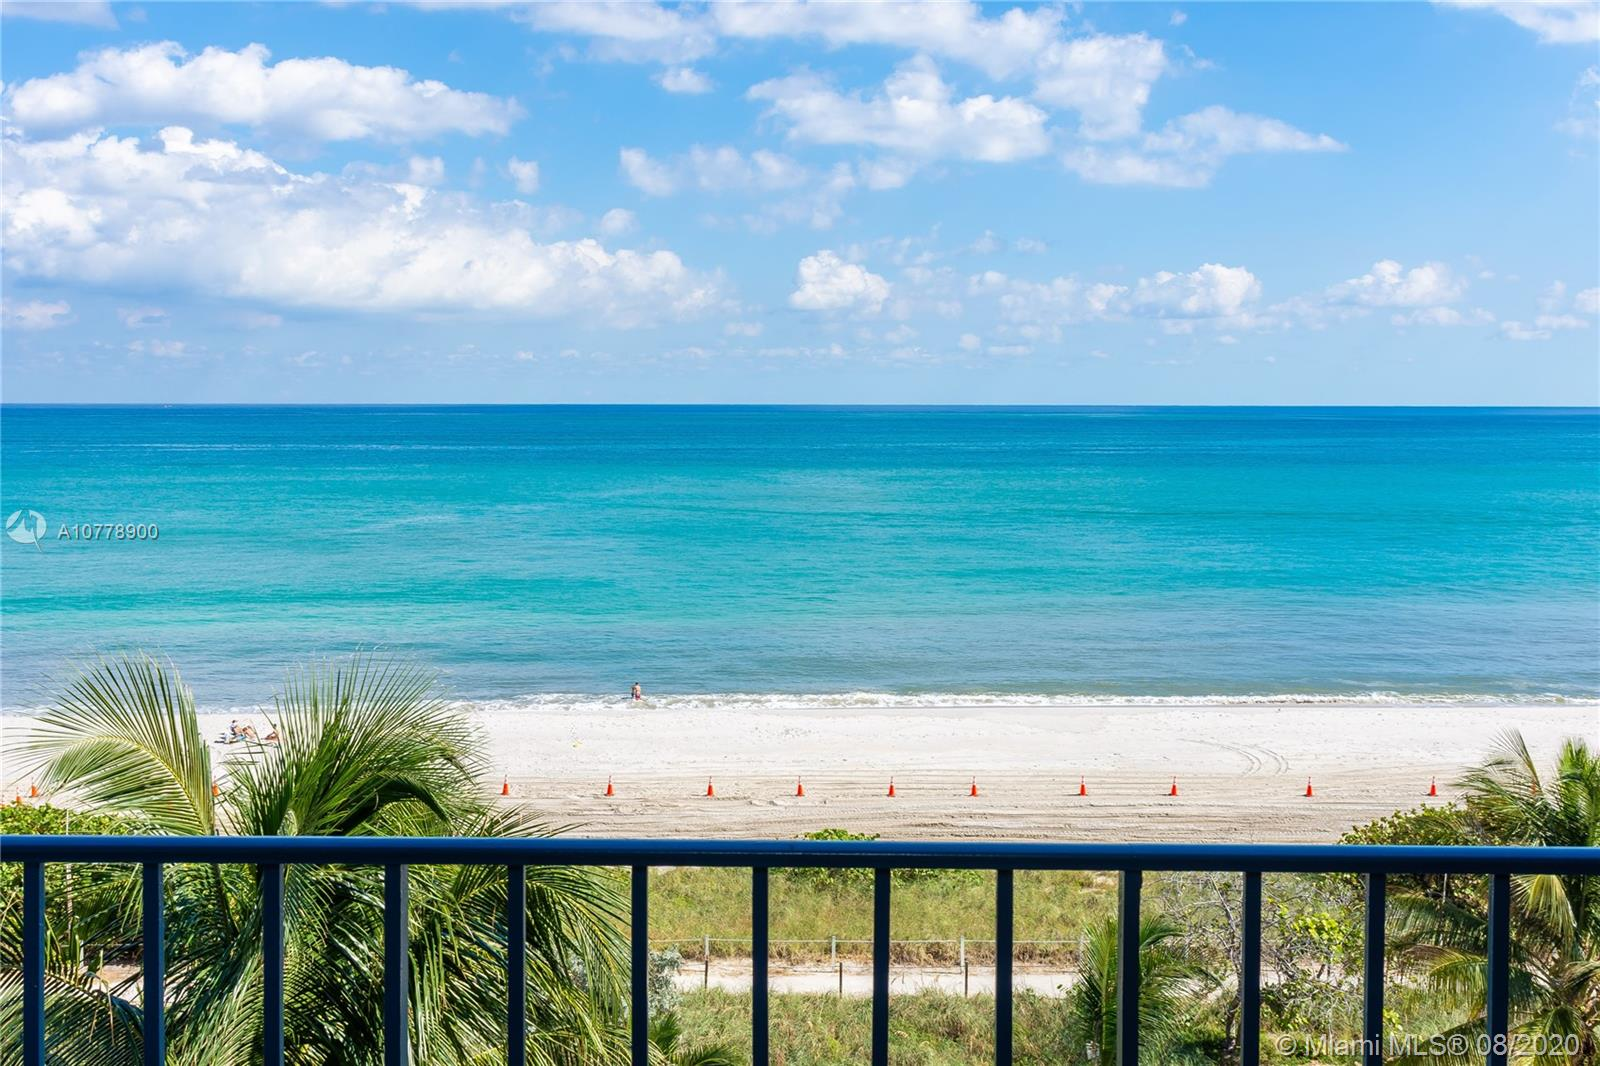 Champlain Towers North #610 - 8877 Collins Ave #610, Surfside, FL 33154